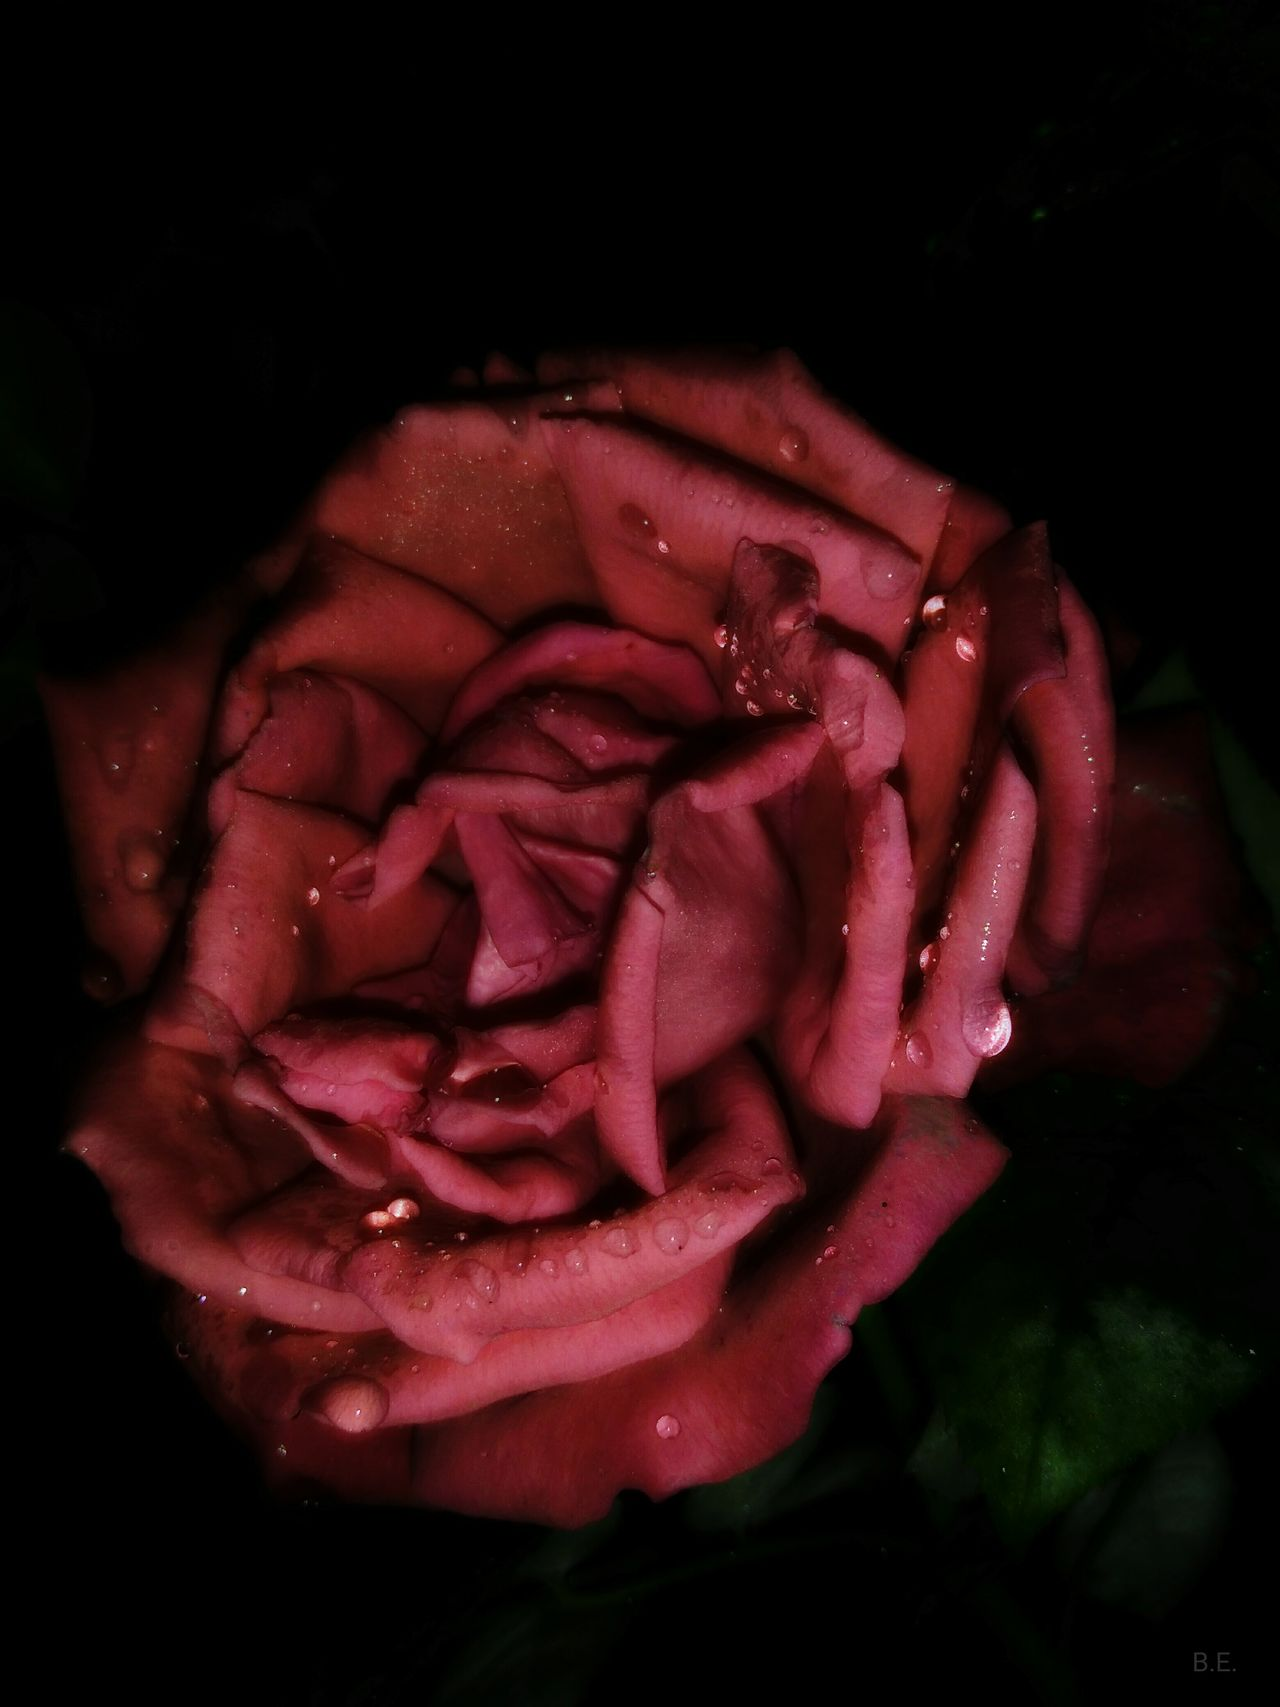 Flower Head Beauty In Nature Romance Rosé Petal Single Flower Close-up Rose - Flower Flower RainDrop Rain Drops On Petals